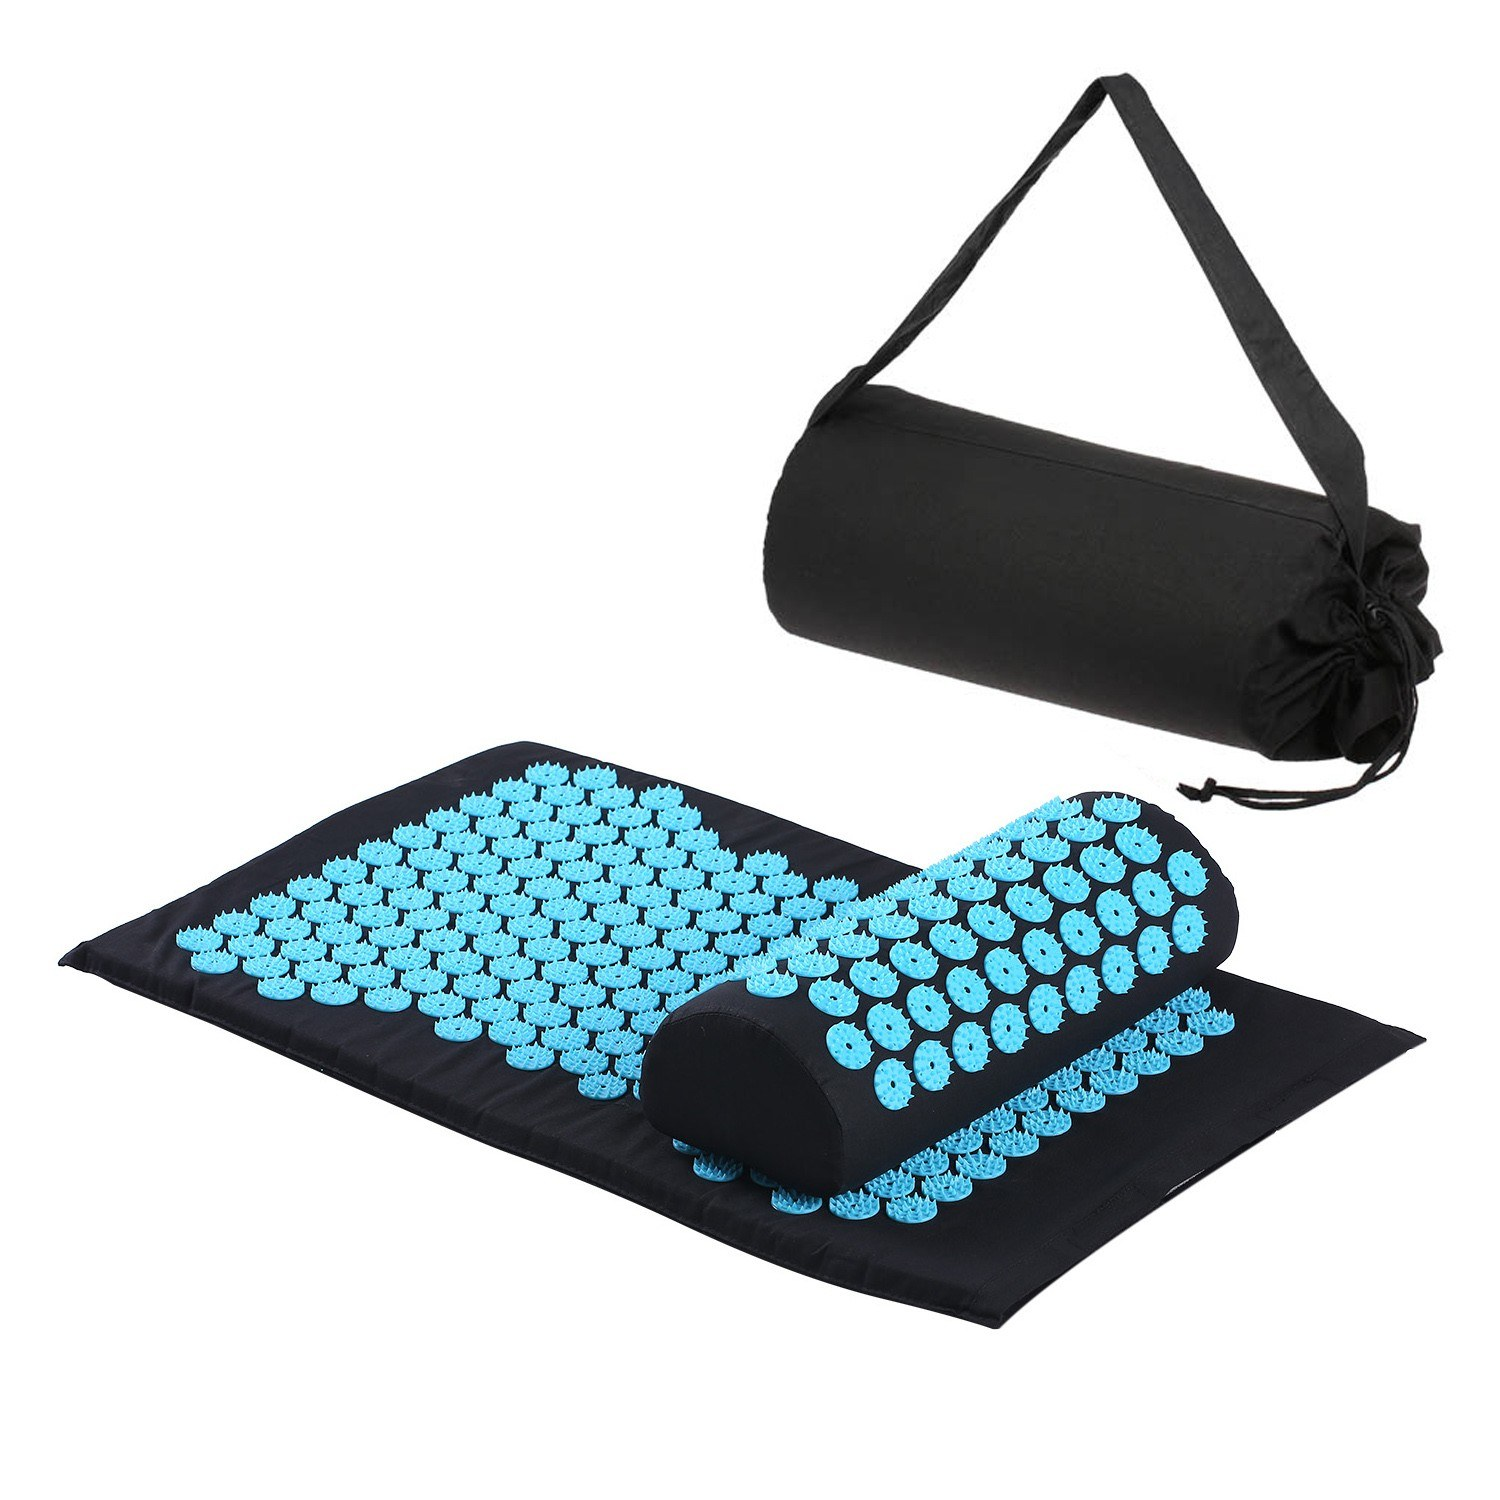 Acupressure Mat and Pillow Set Massage Mat Spike Acupuncture Pad Acupressure Cushion